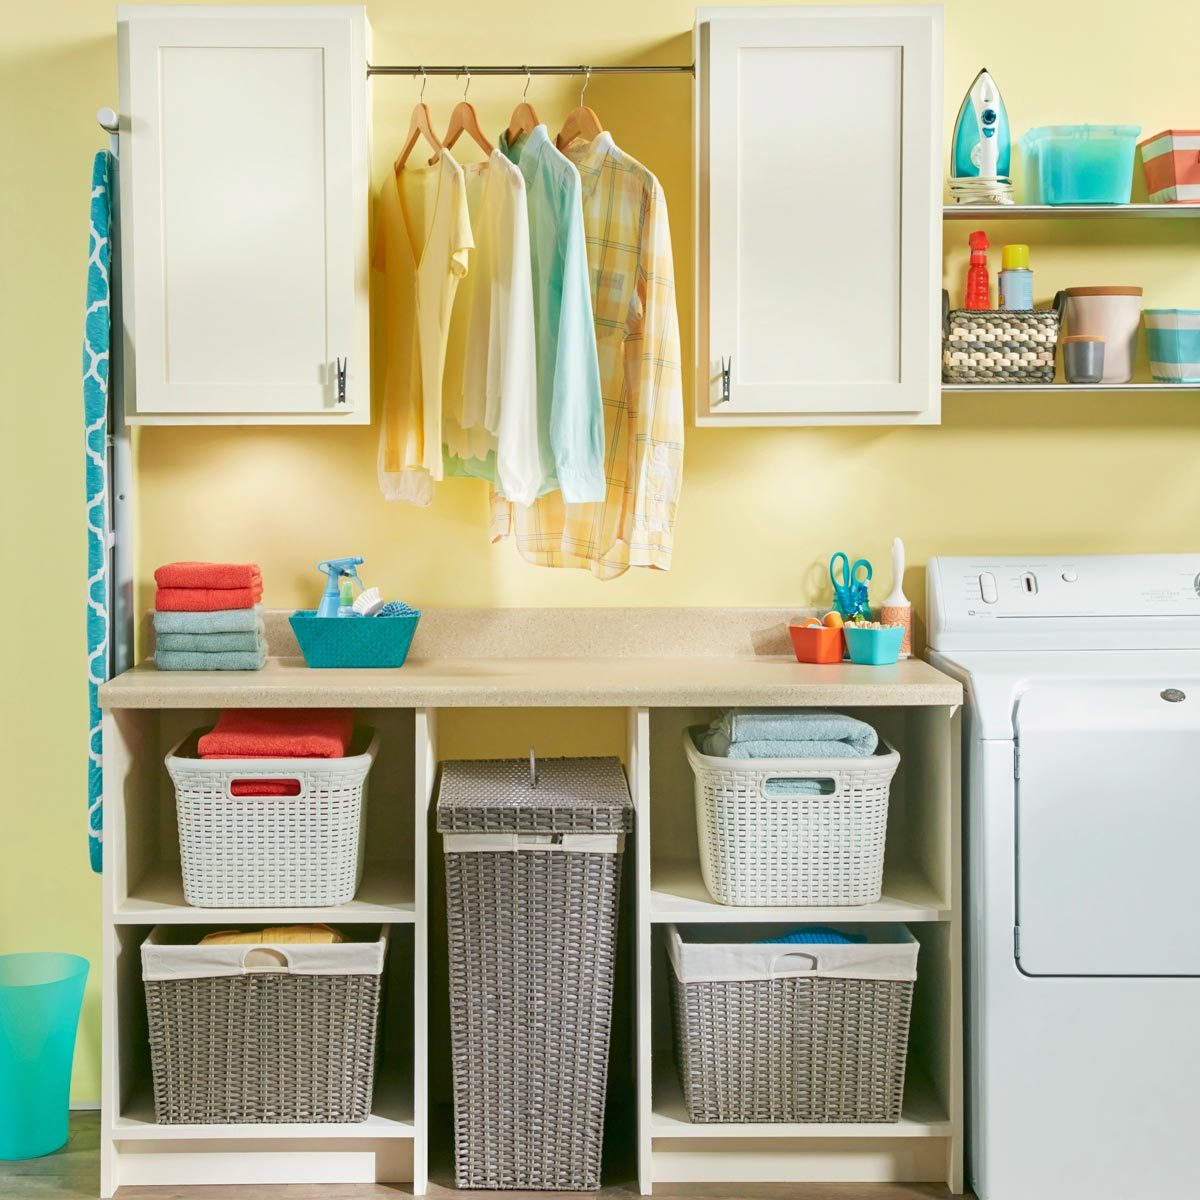 26 Cheap Laundry Room Ideas You Can DIY Today!  Family Handyman